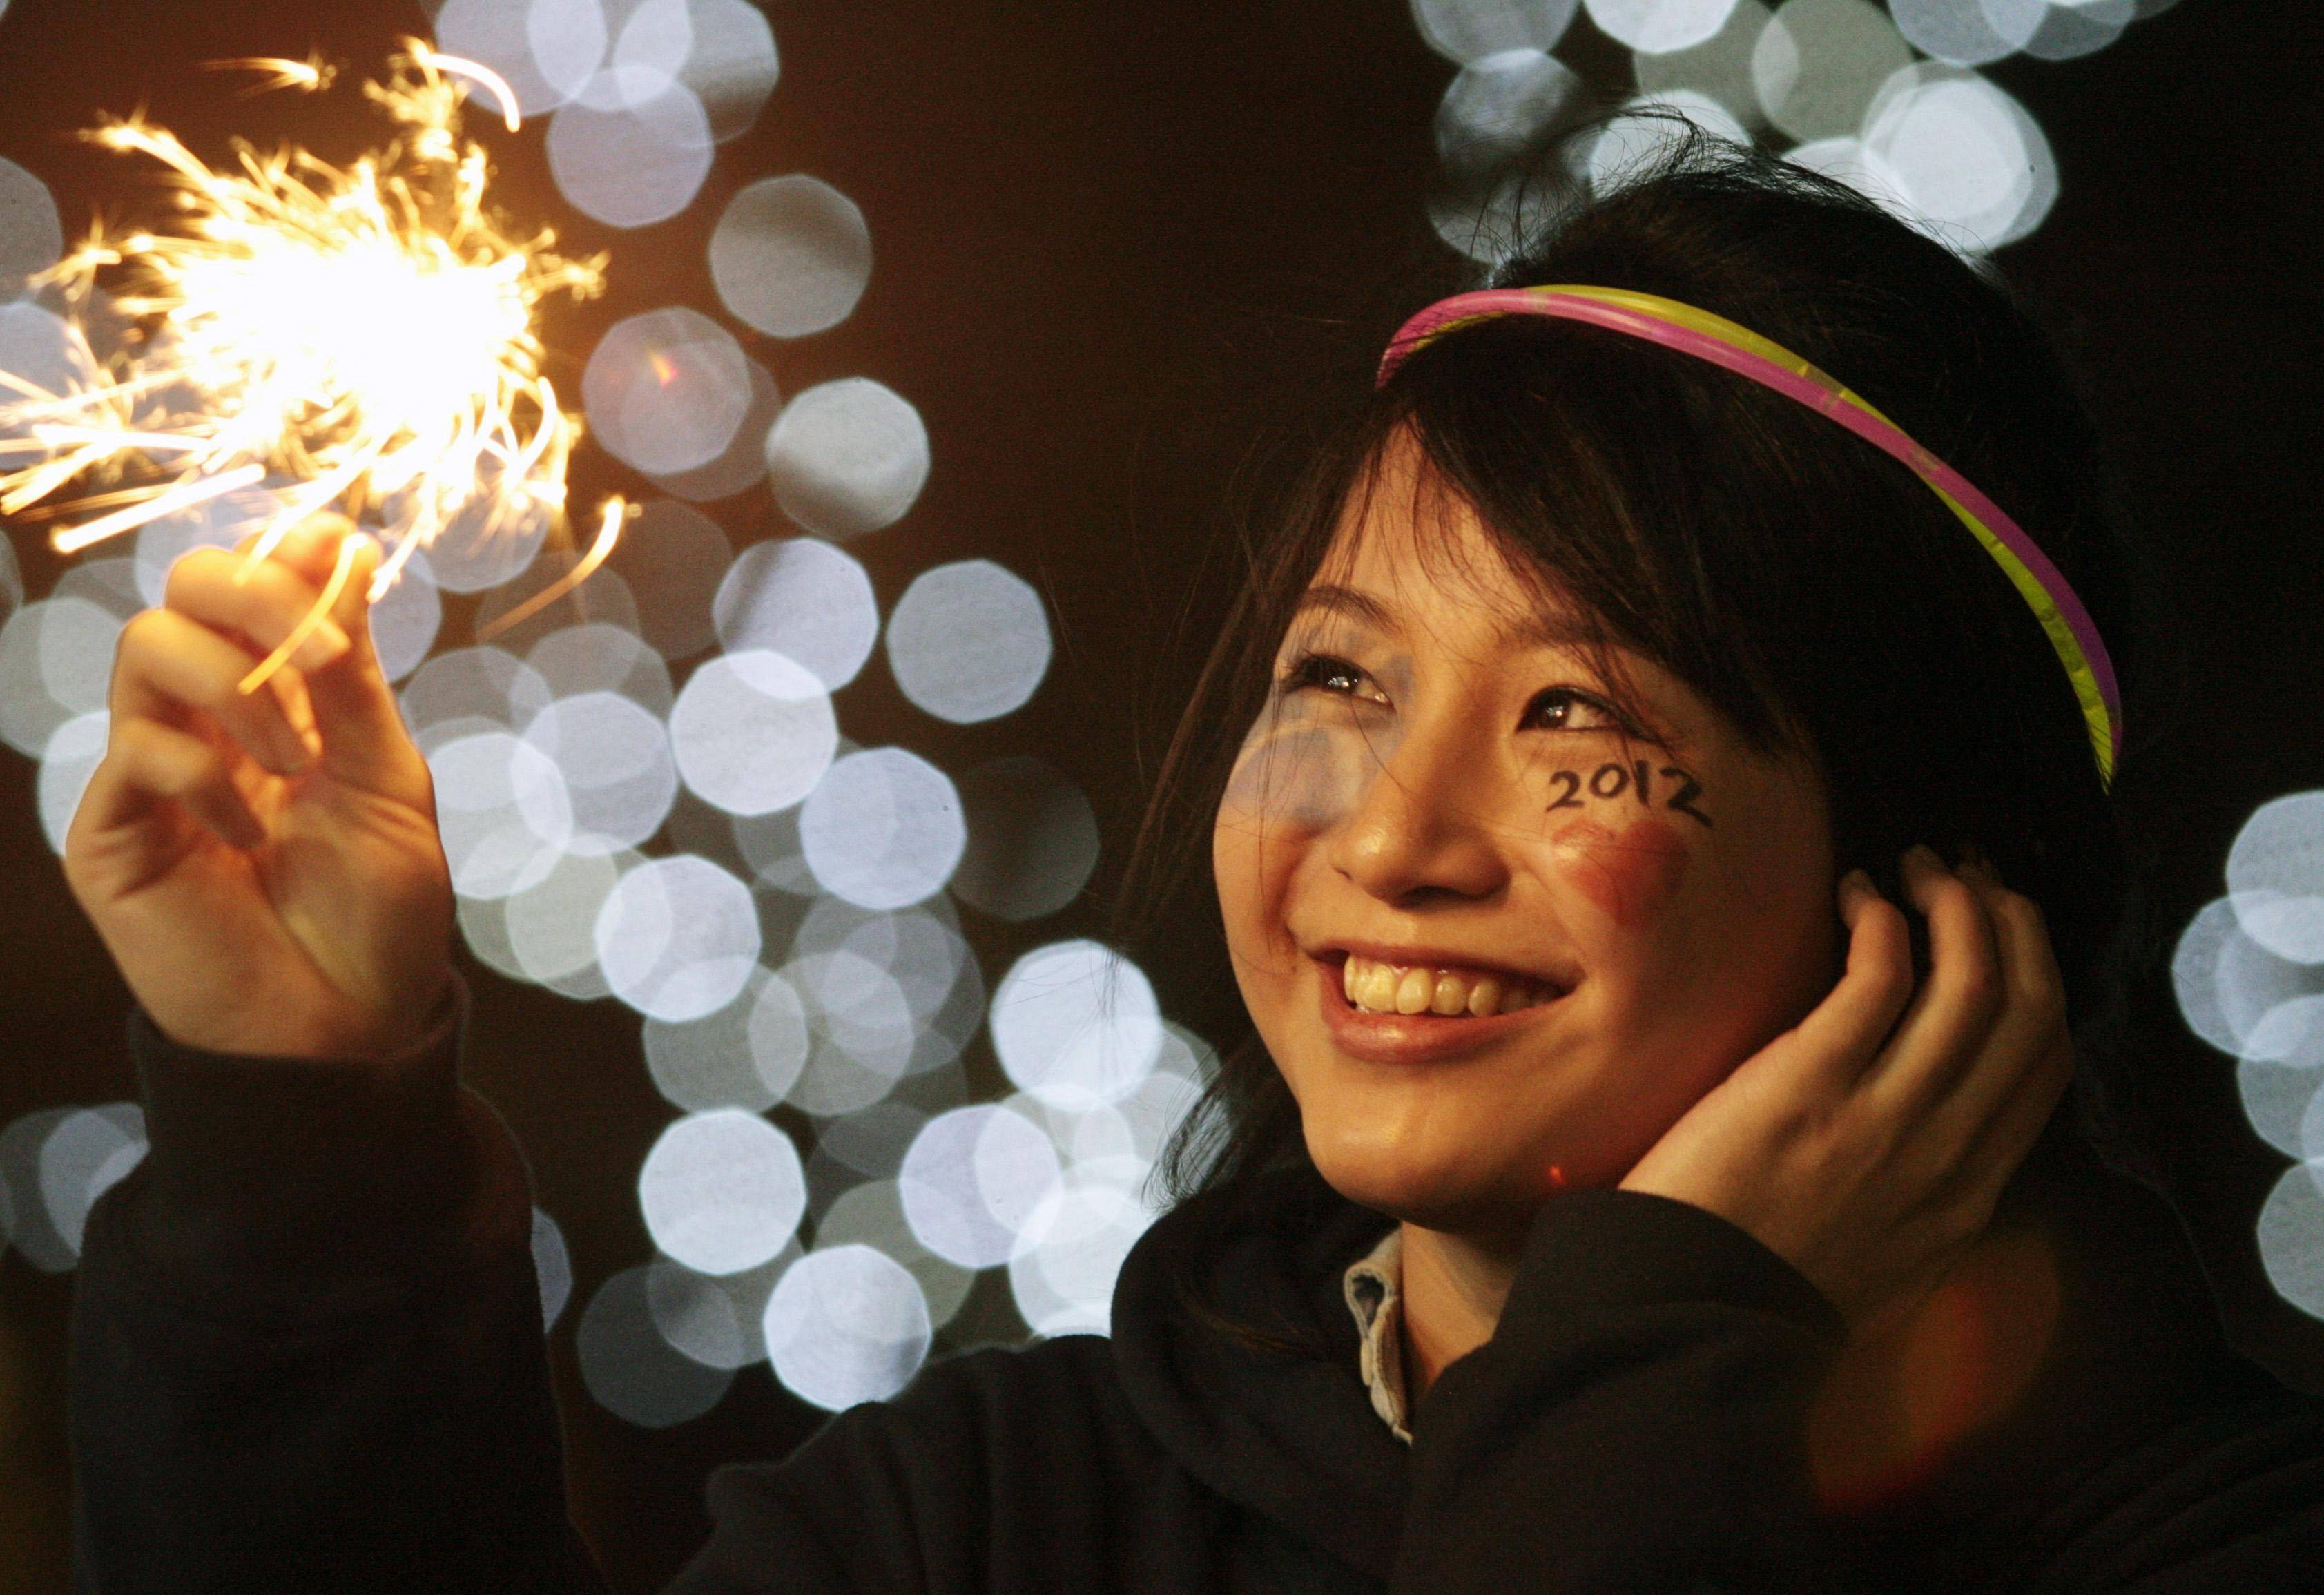 Jessica Ong from Singapore starts her new year celebrations early on New Year's Eve at the Hogmanay street party Saturday on Princes Street in Edinburgh, Scotland.